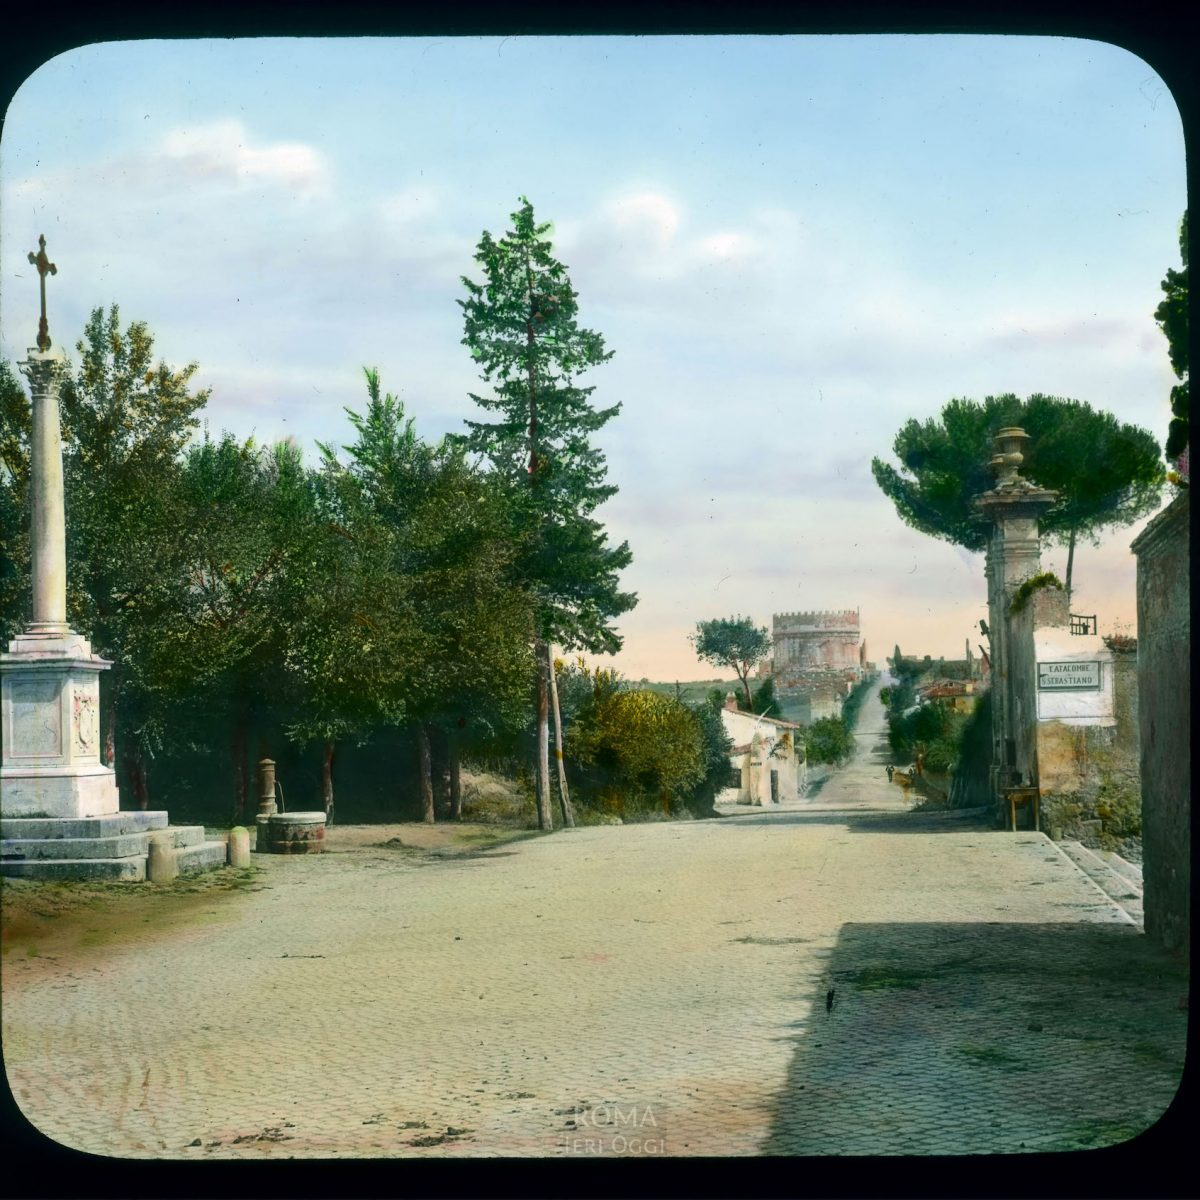 Rome. Tomb of Cecilia Metella: distant view on the Appian Way (Via Appia) View in tinted lantern slide, ca. 1919-1938. The tomb dates from Tomb ca. 20 B.C.E.